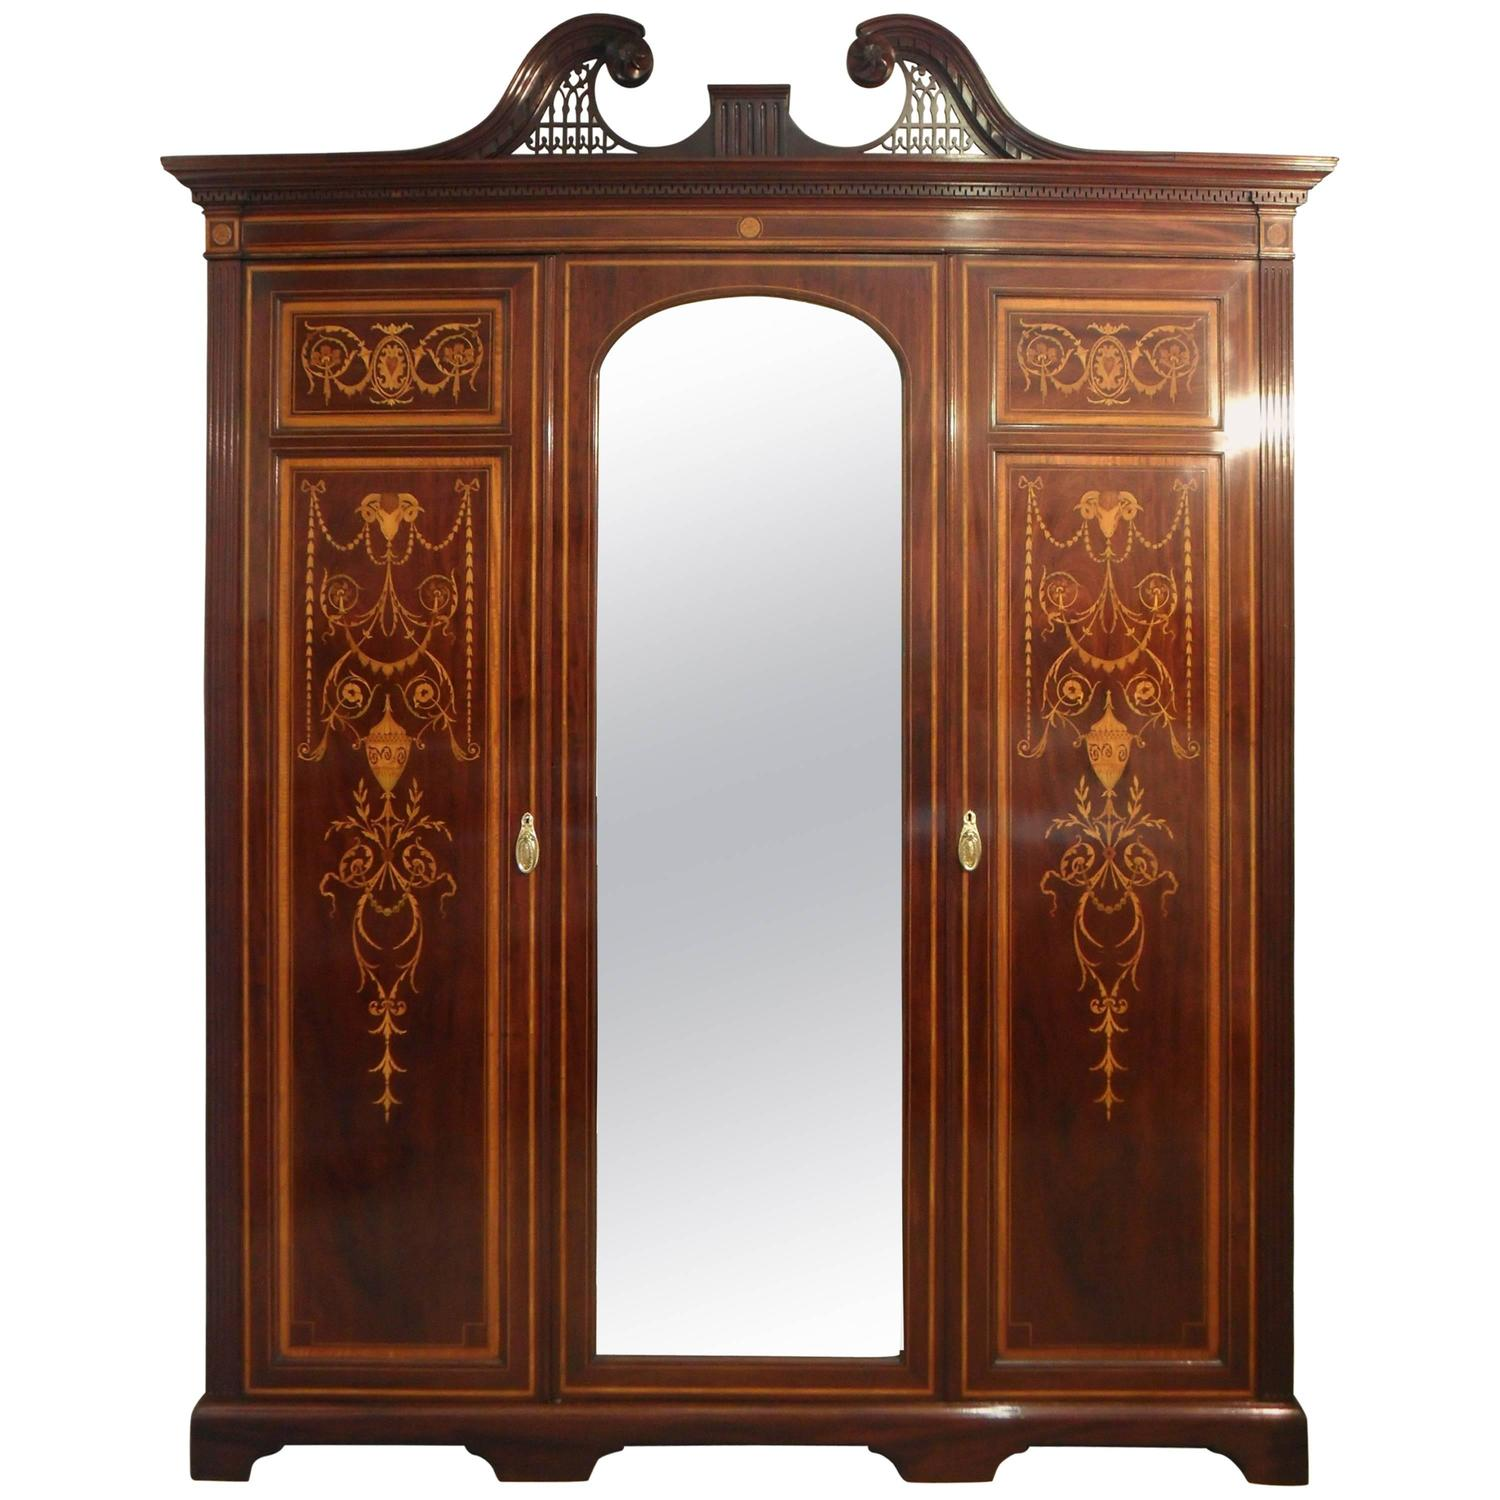 mahogany wardrobes and armoires - 96 for sale at 1stdibs